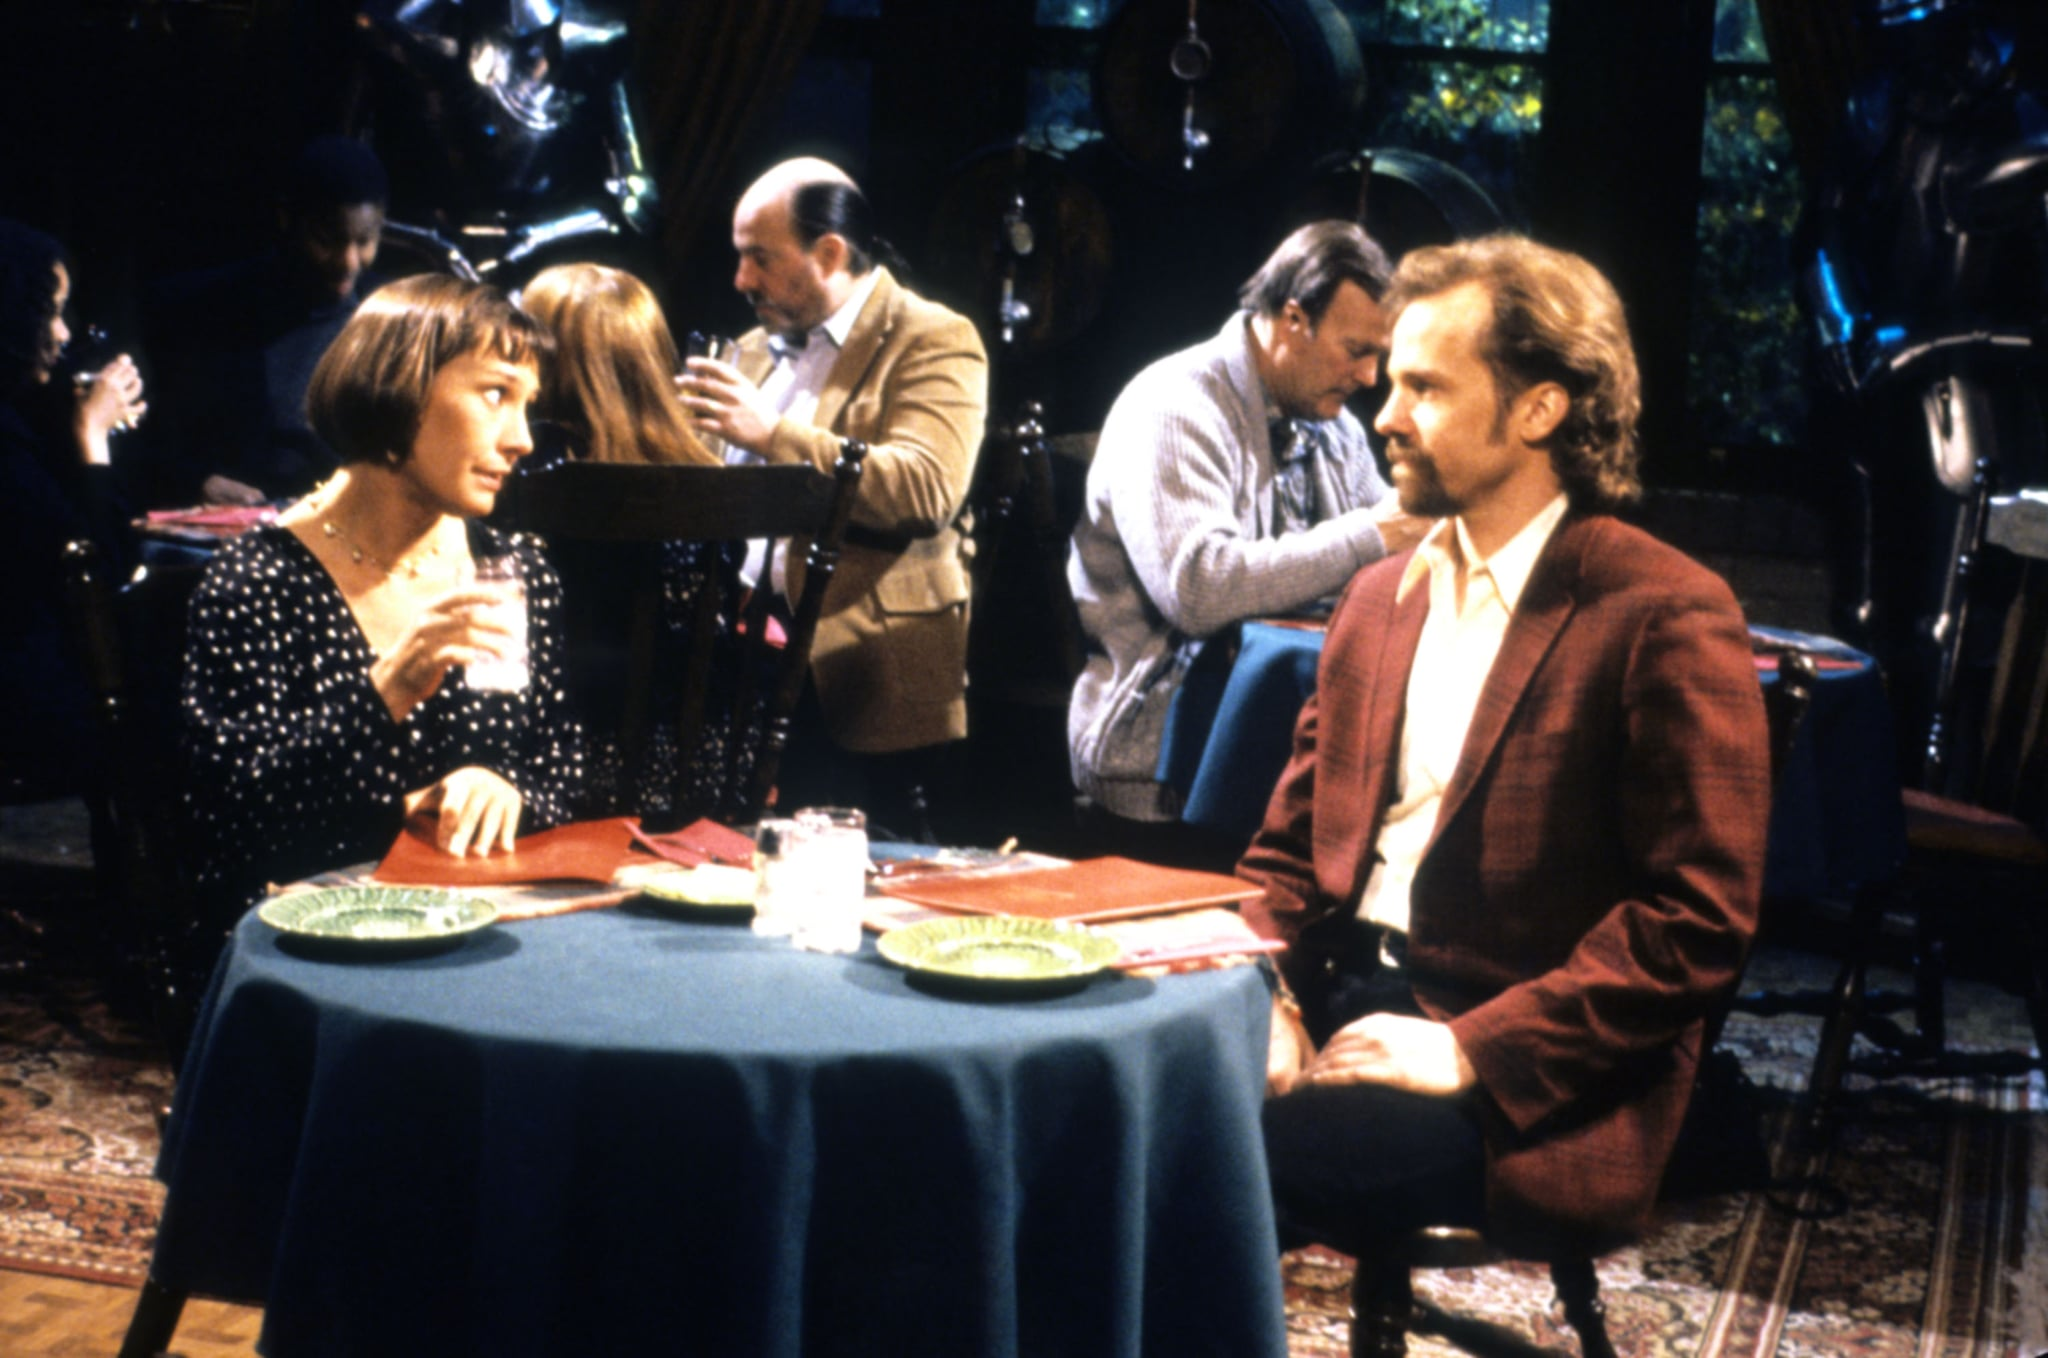 ROSEANNE, Laurie Metcalf, Michael O'Keefe, 1988-97, Carsey-Werner/courtesy Everett Collection